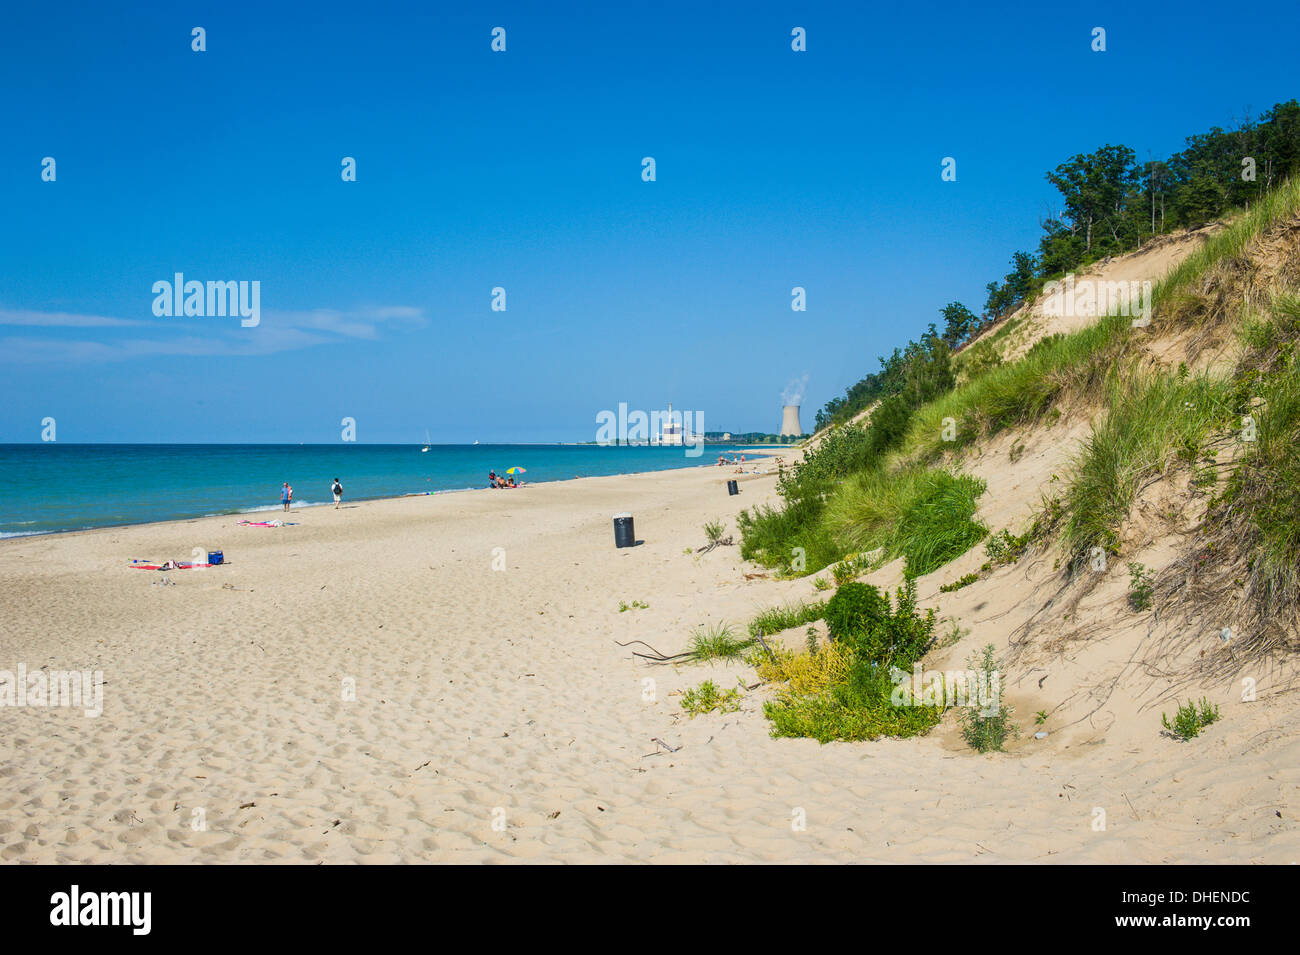 Indiana sand dunes, Indiana, United States of America, North America - Stock Image